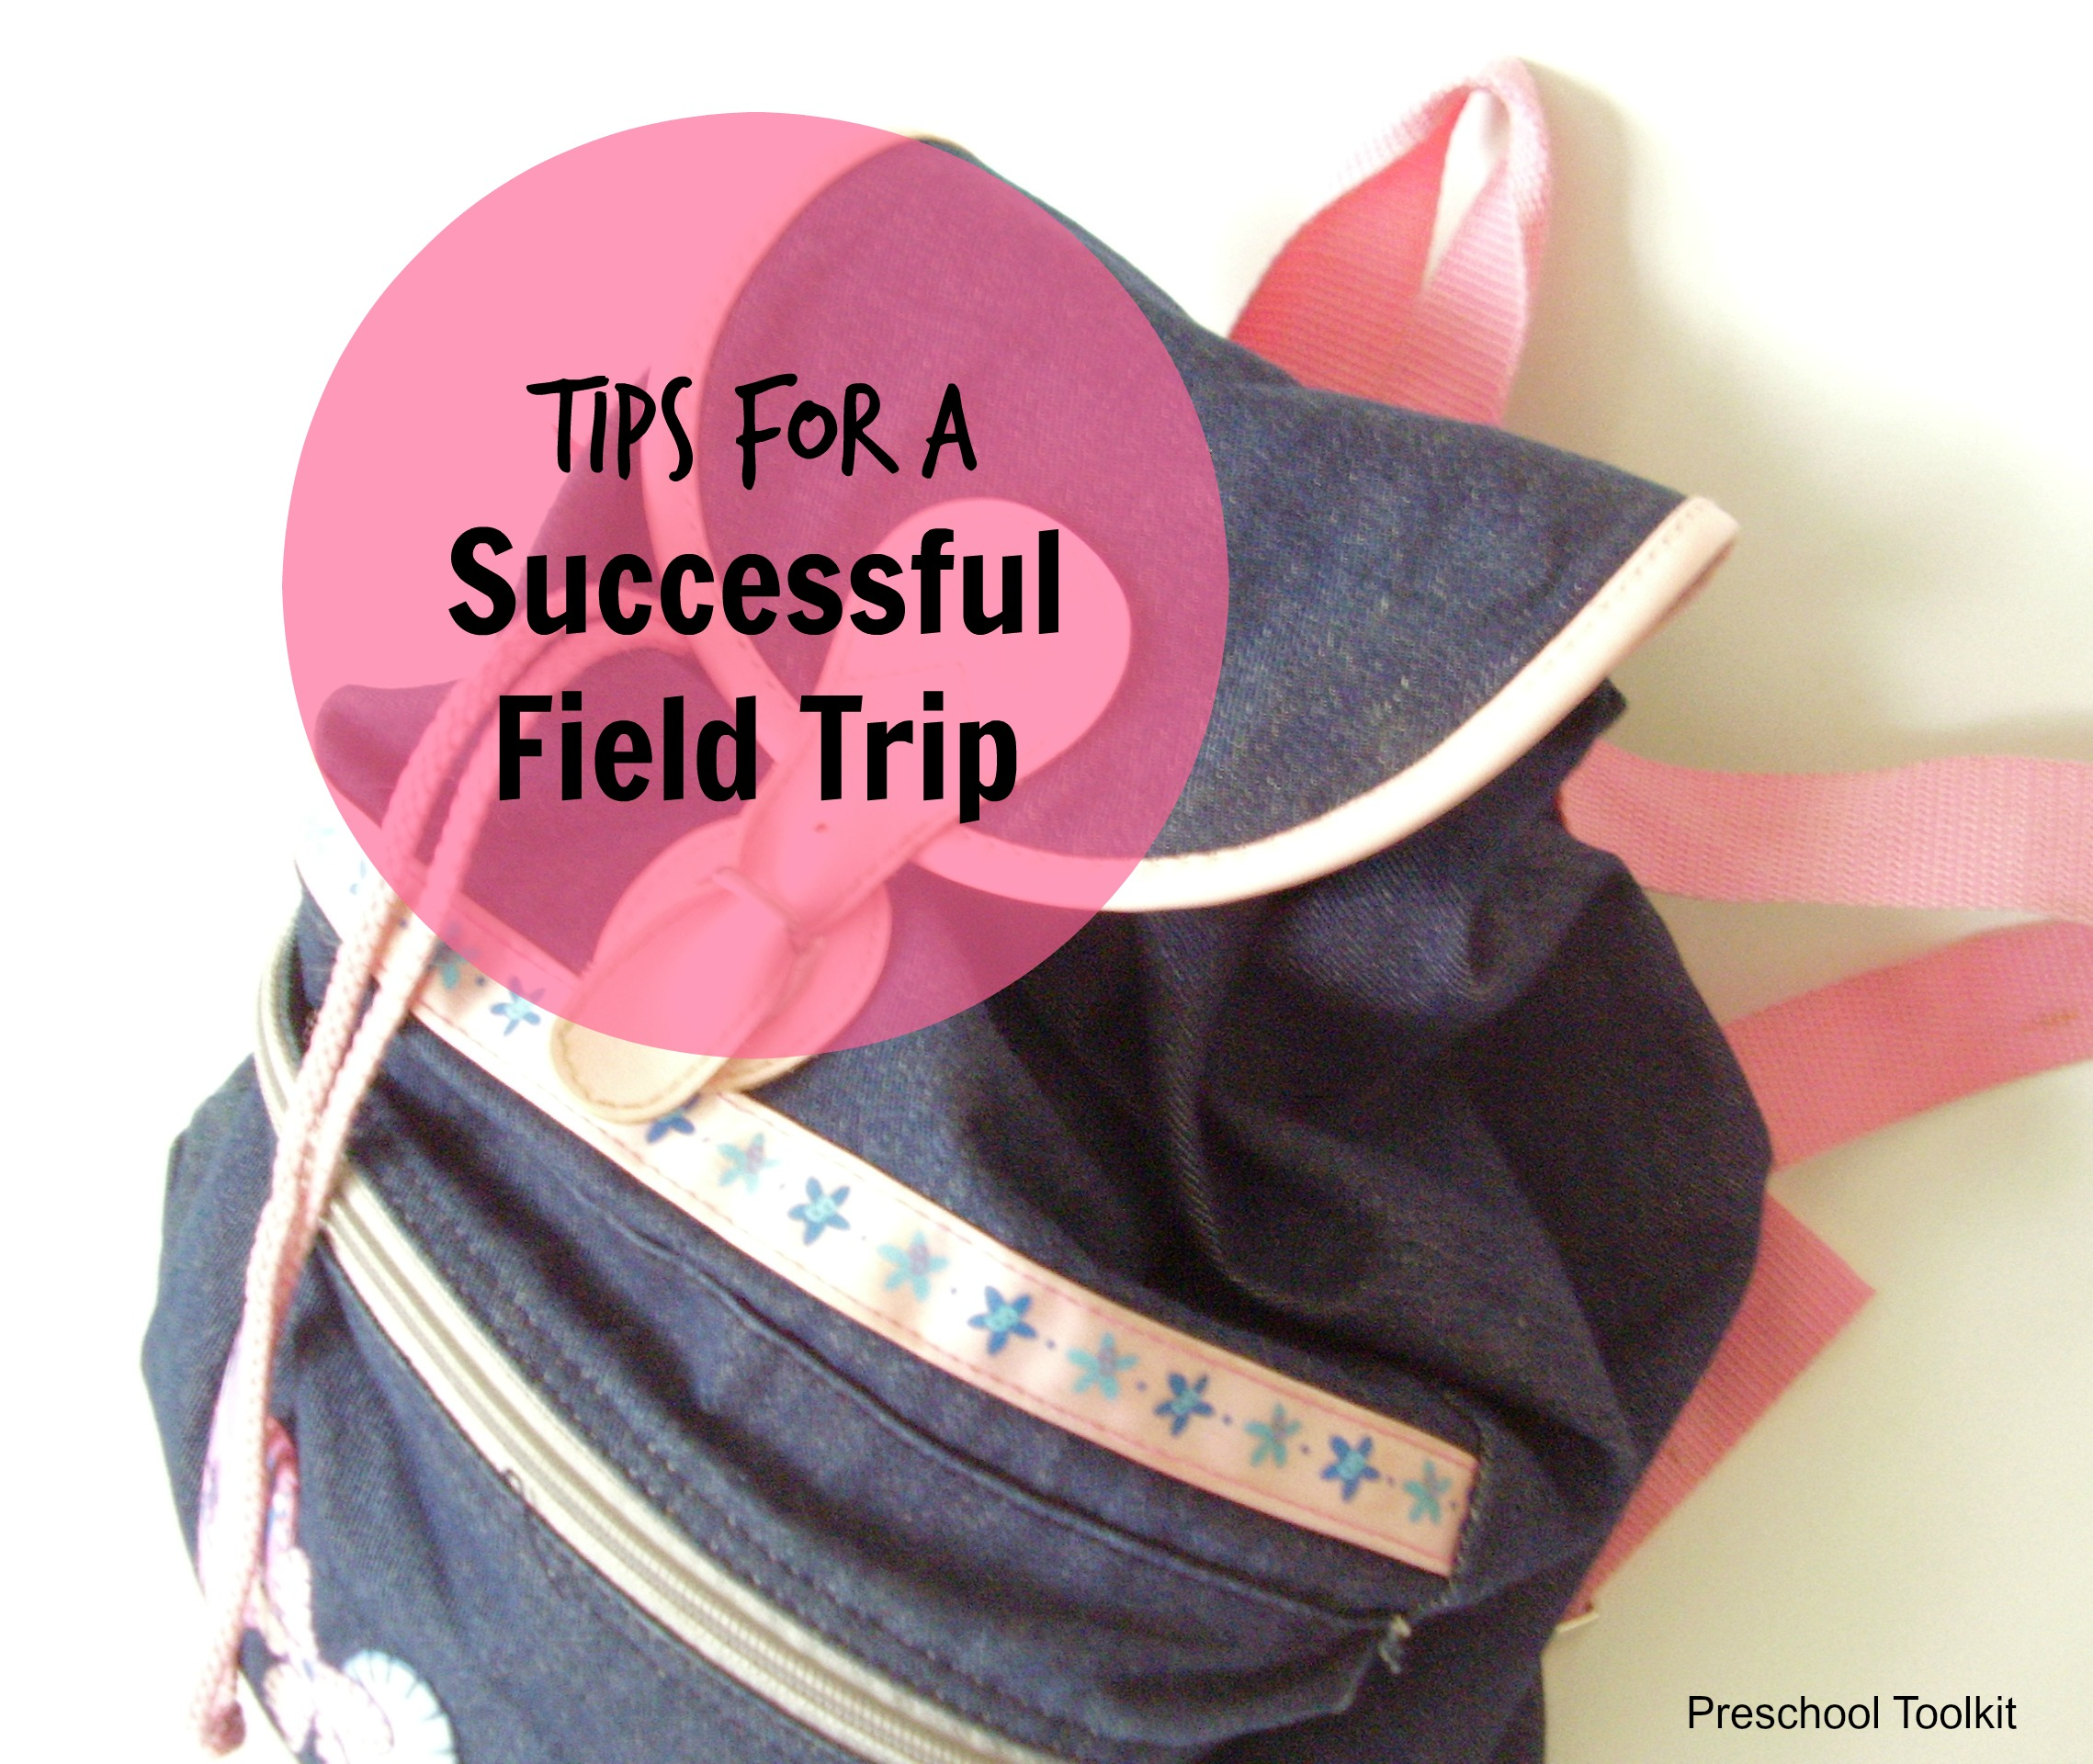 Tips for the Proper Use of Backpacks